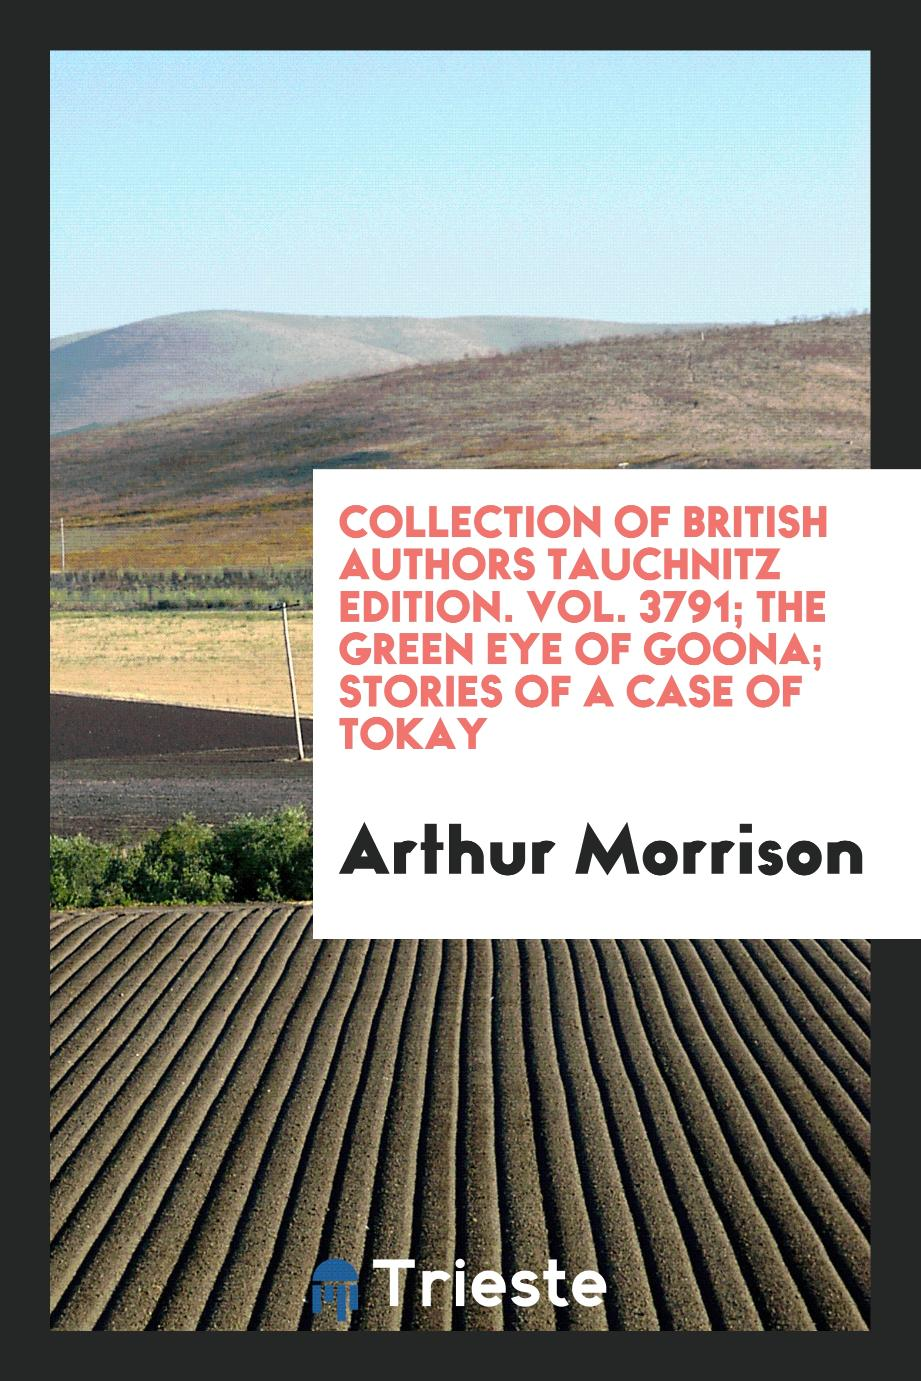 Collection of British Authors Tauchnitz Edition. Vol. 3791; The Green Eye of Goona; Stories of a Case of Tokay